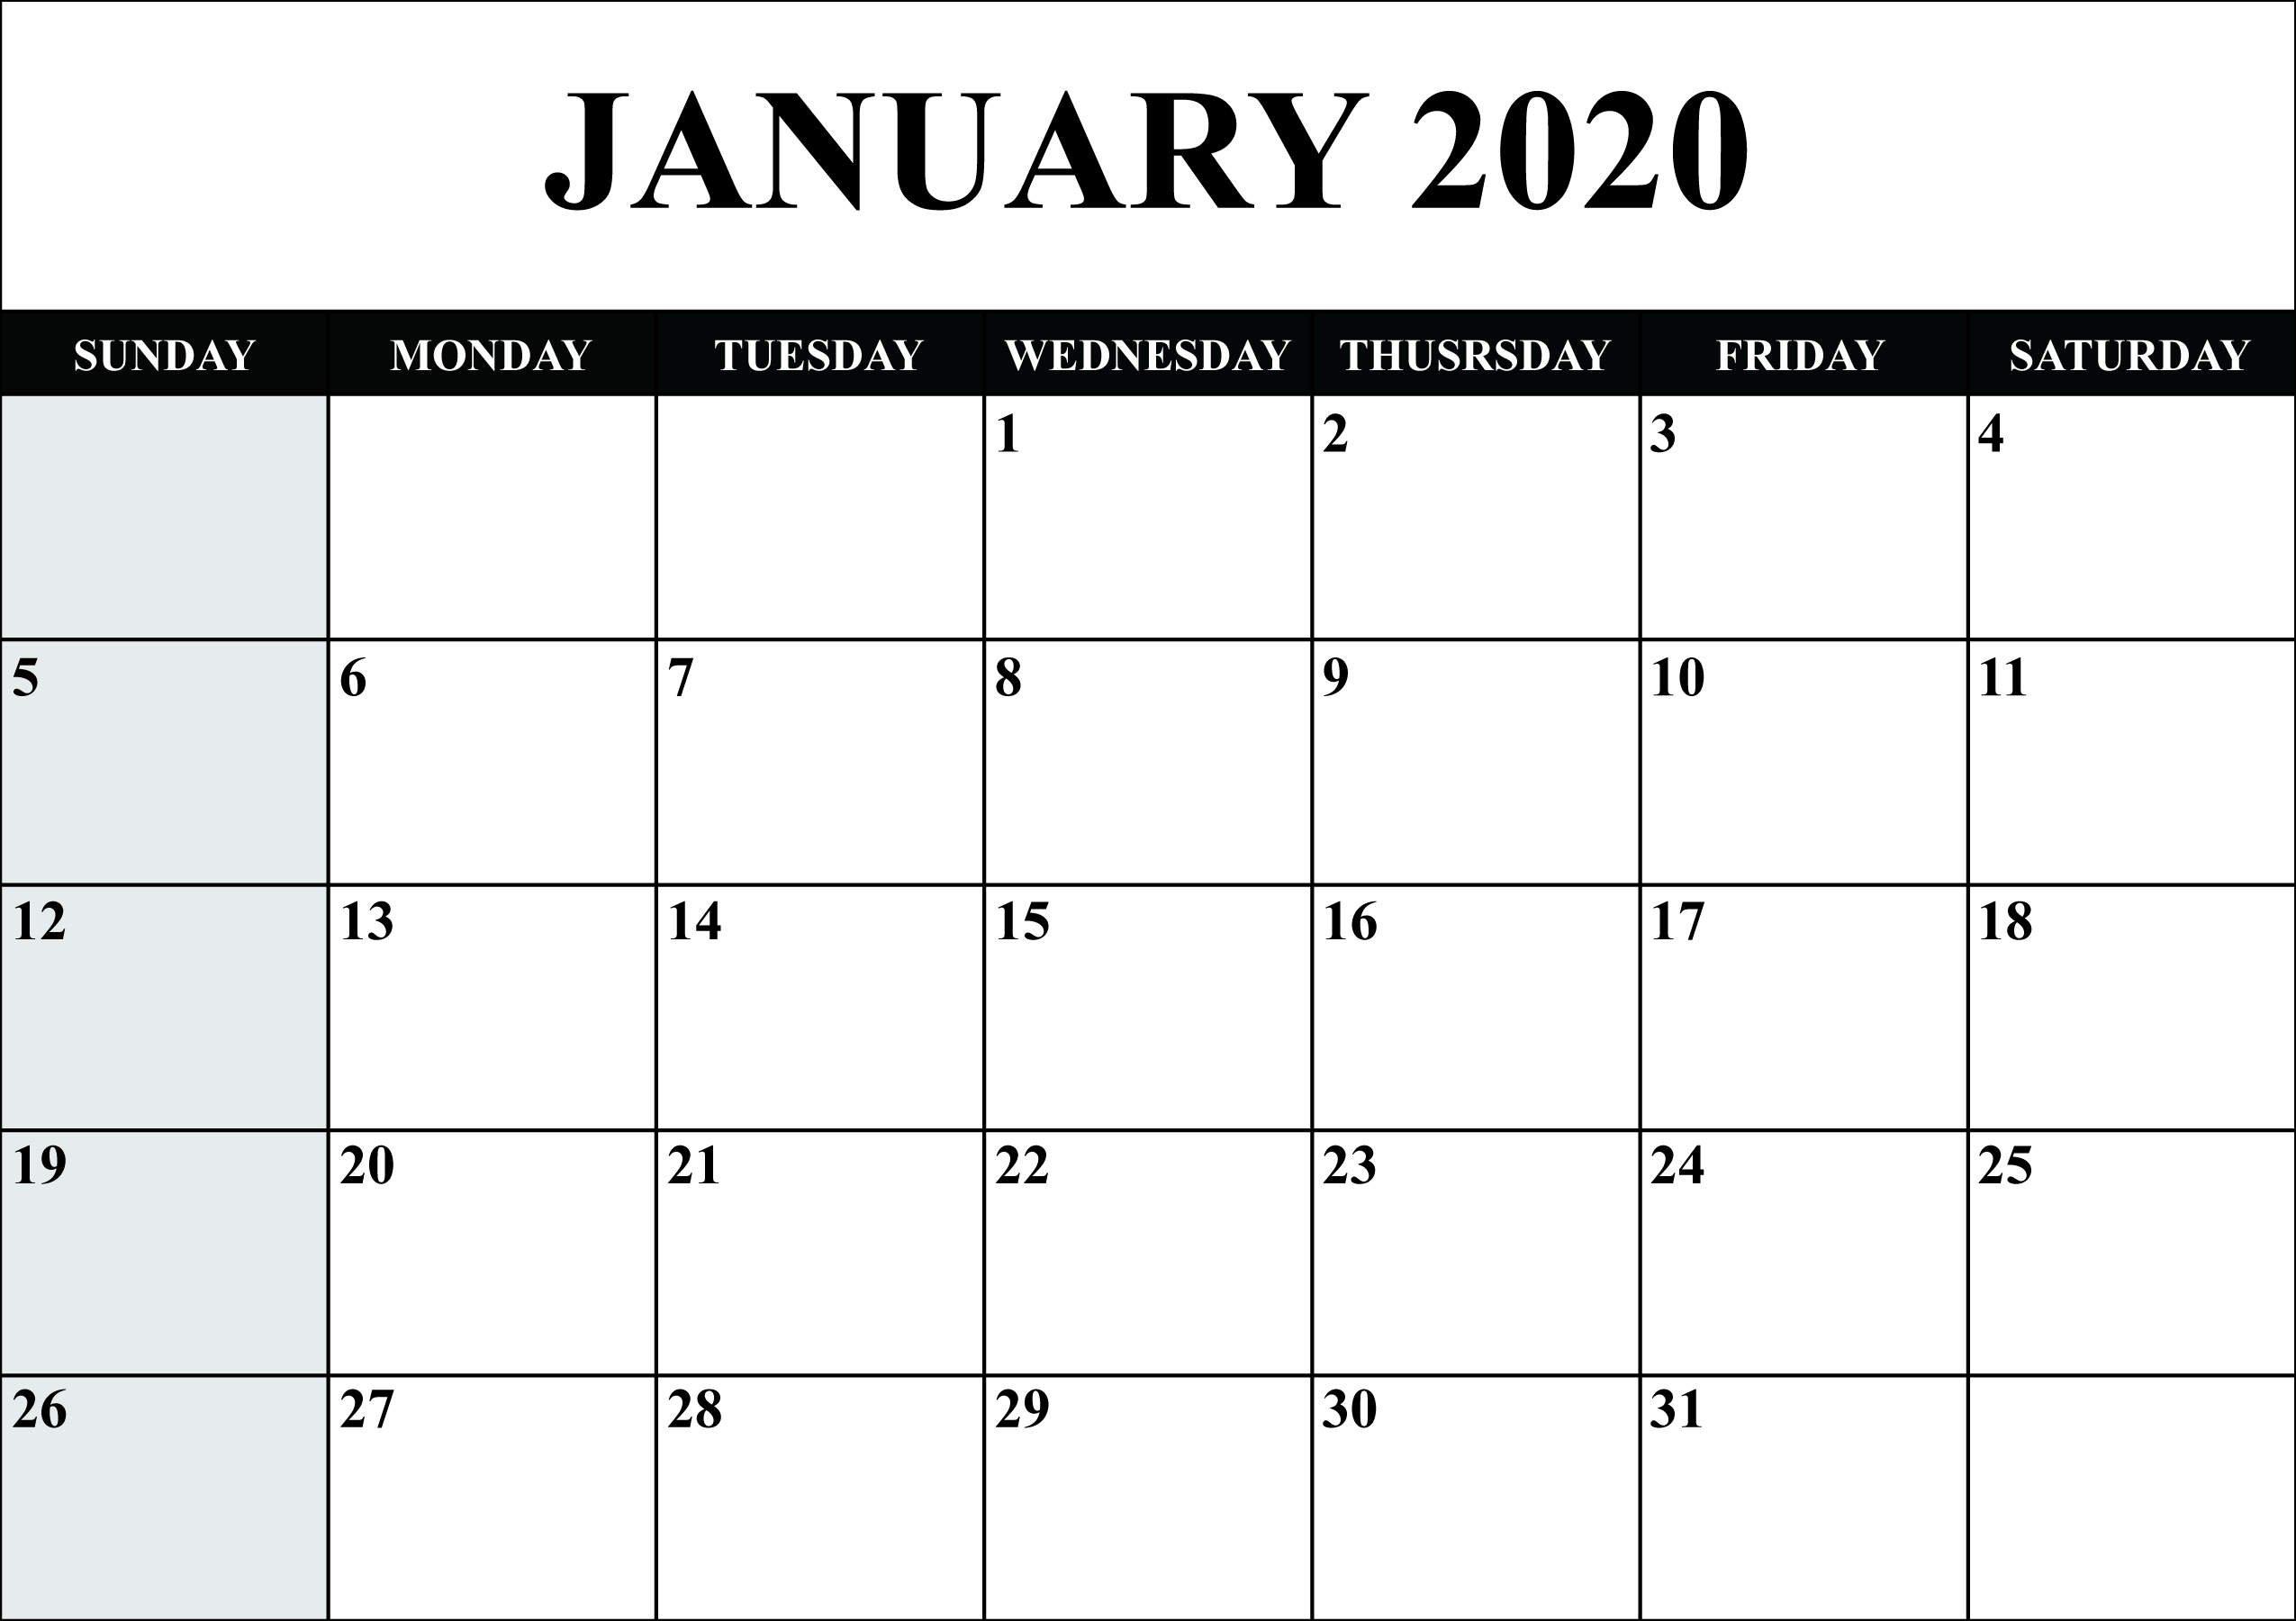 Free Blank January 2020 Calendar Printable In Pdf, Word, Excel inside 2020 Monday - Friday Calendar Printable